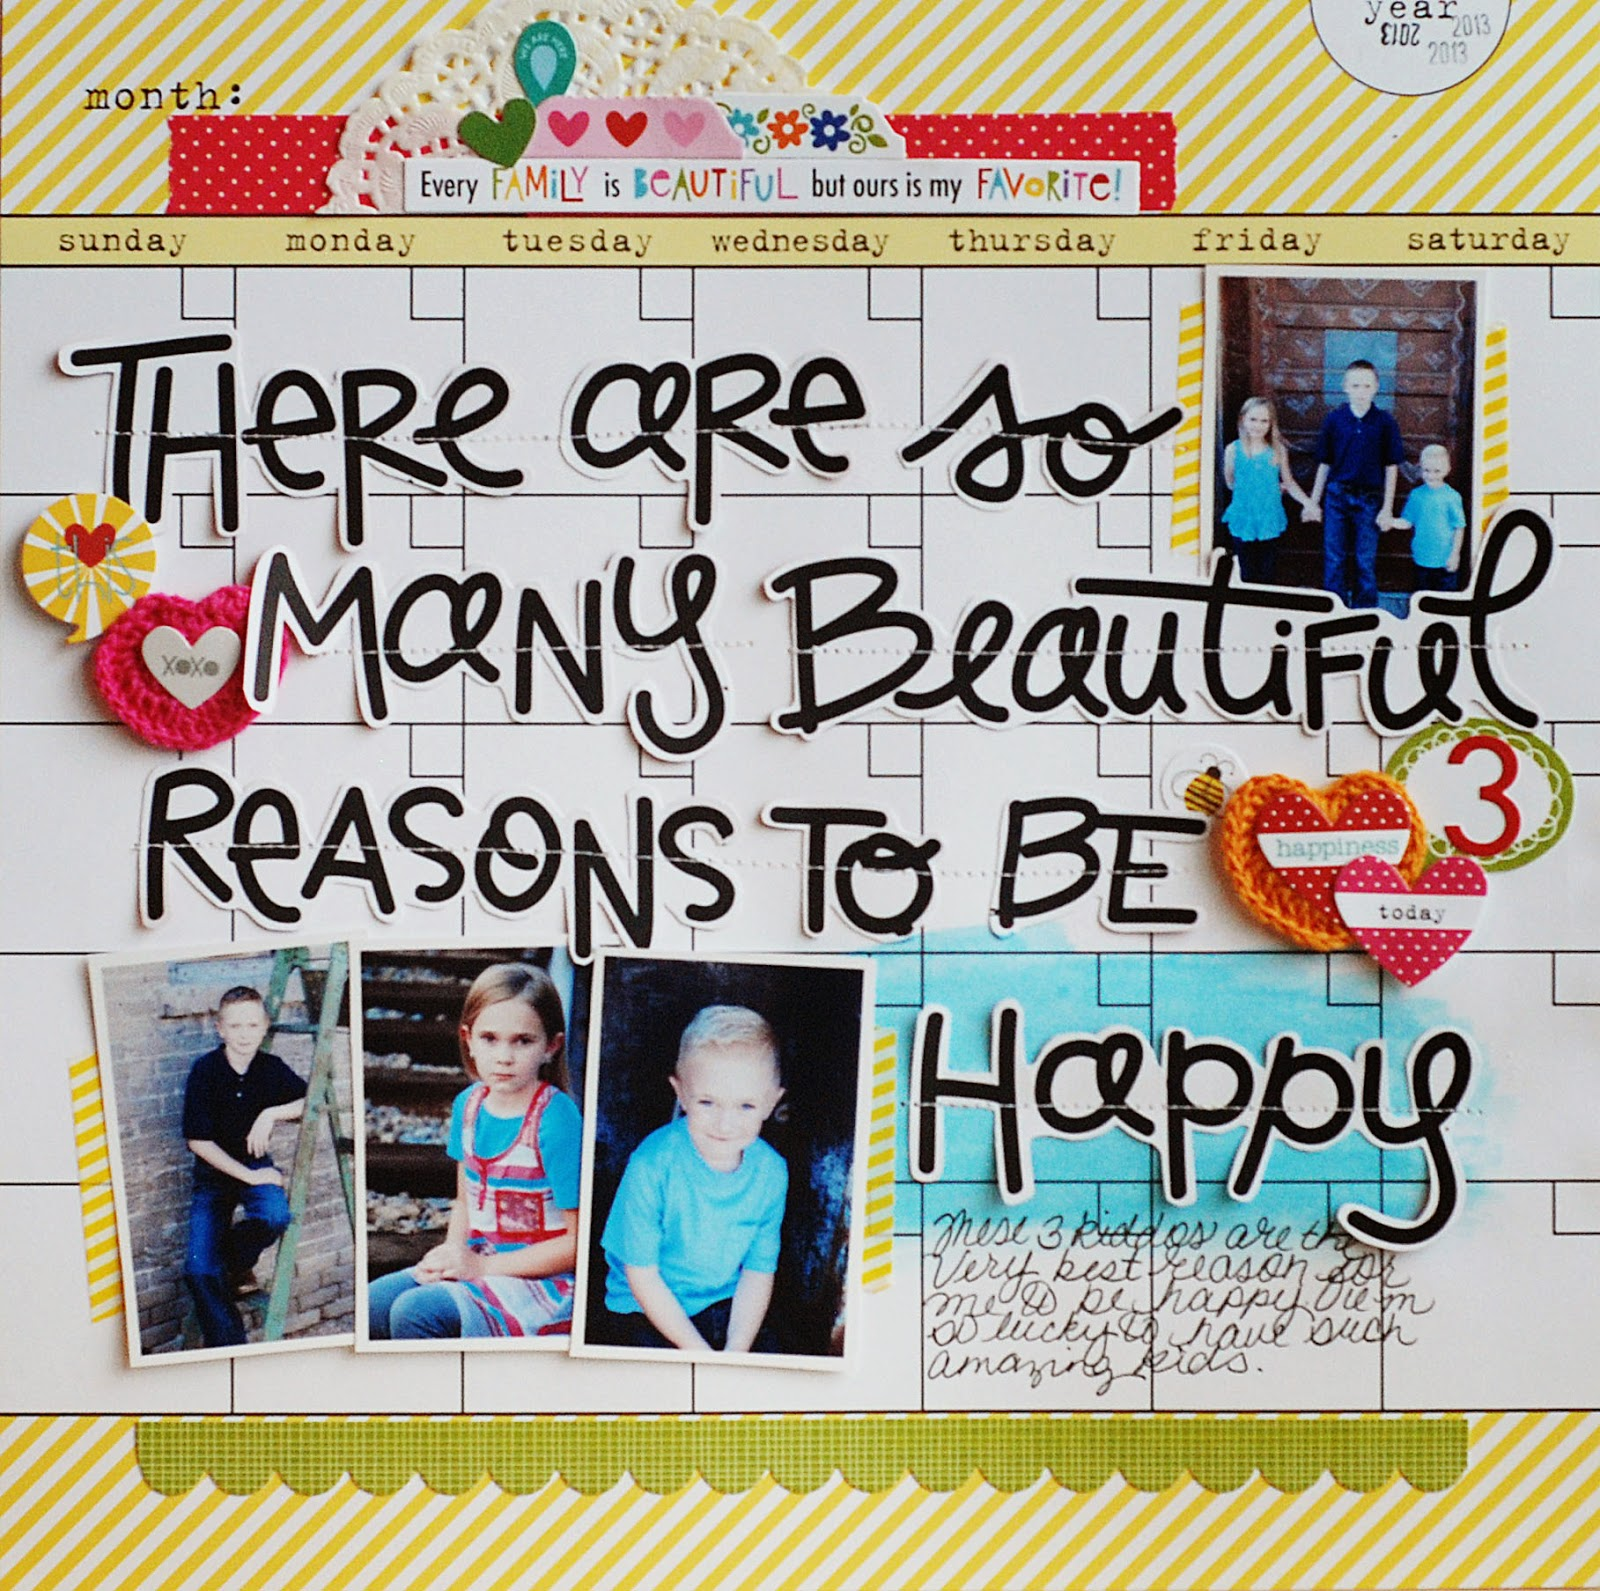 Scrapbook ideas many pictures - Scrapbook Ideas About Family Becki Adams There Are So Many Beautiful Reasons To Be Happy